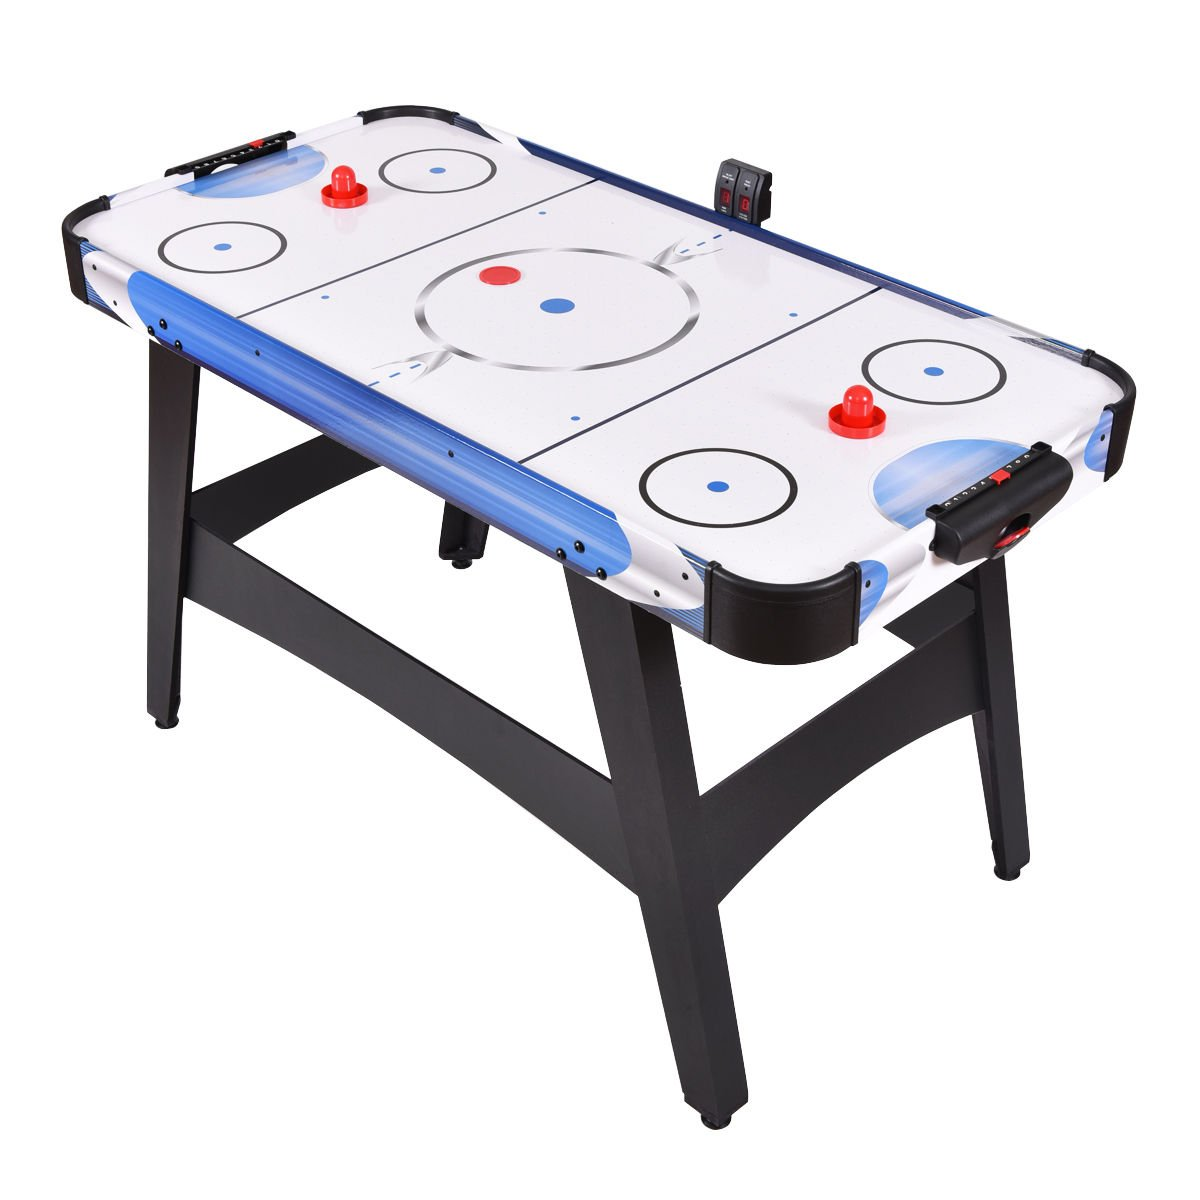 54 Inch Air Hockey Table By Goplus